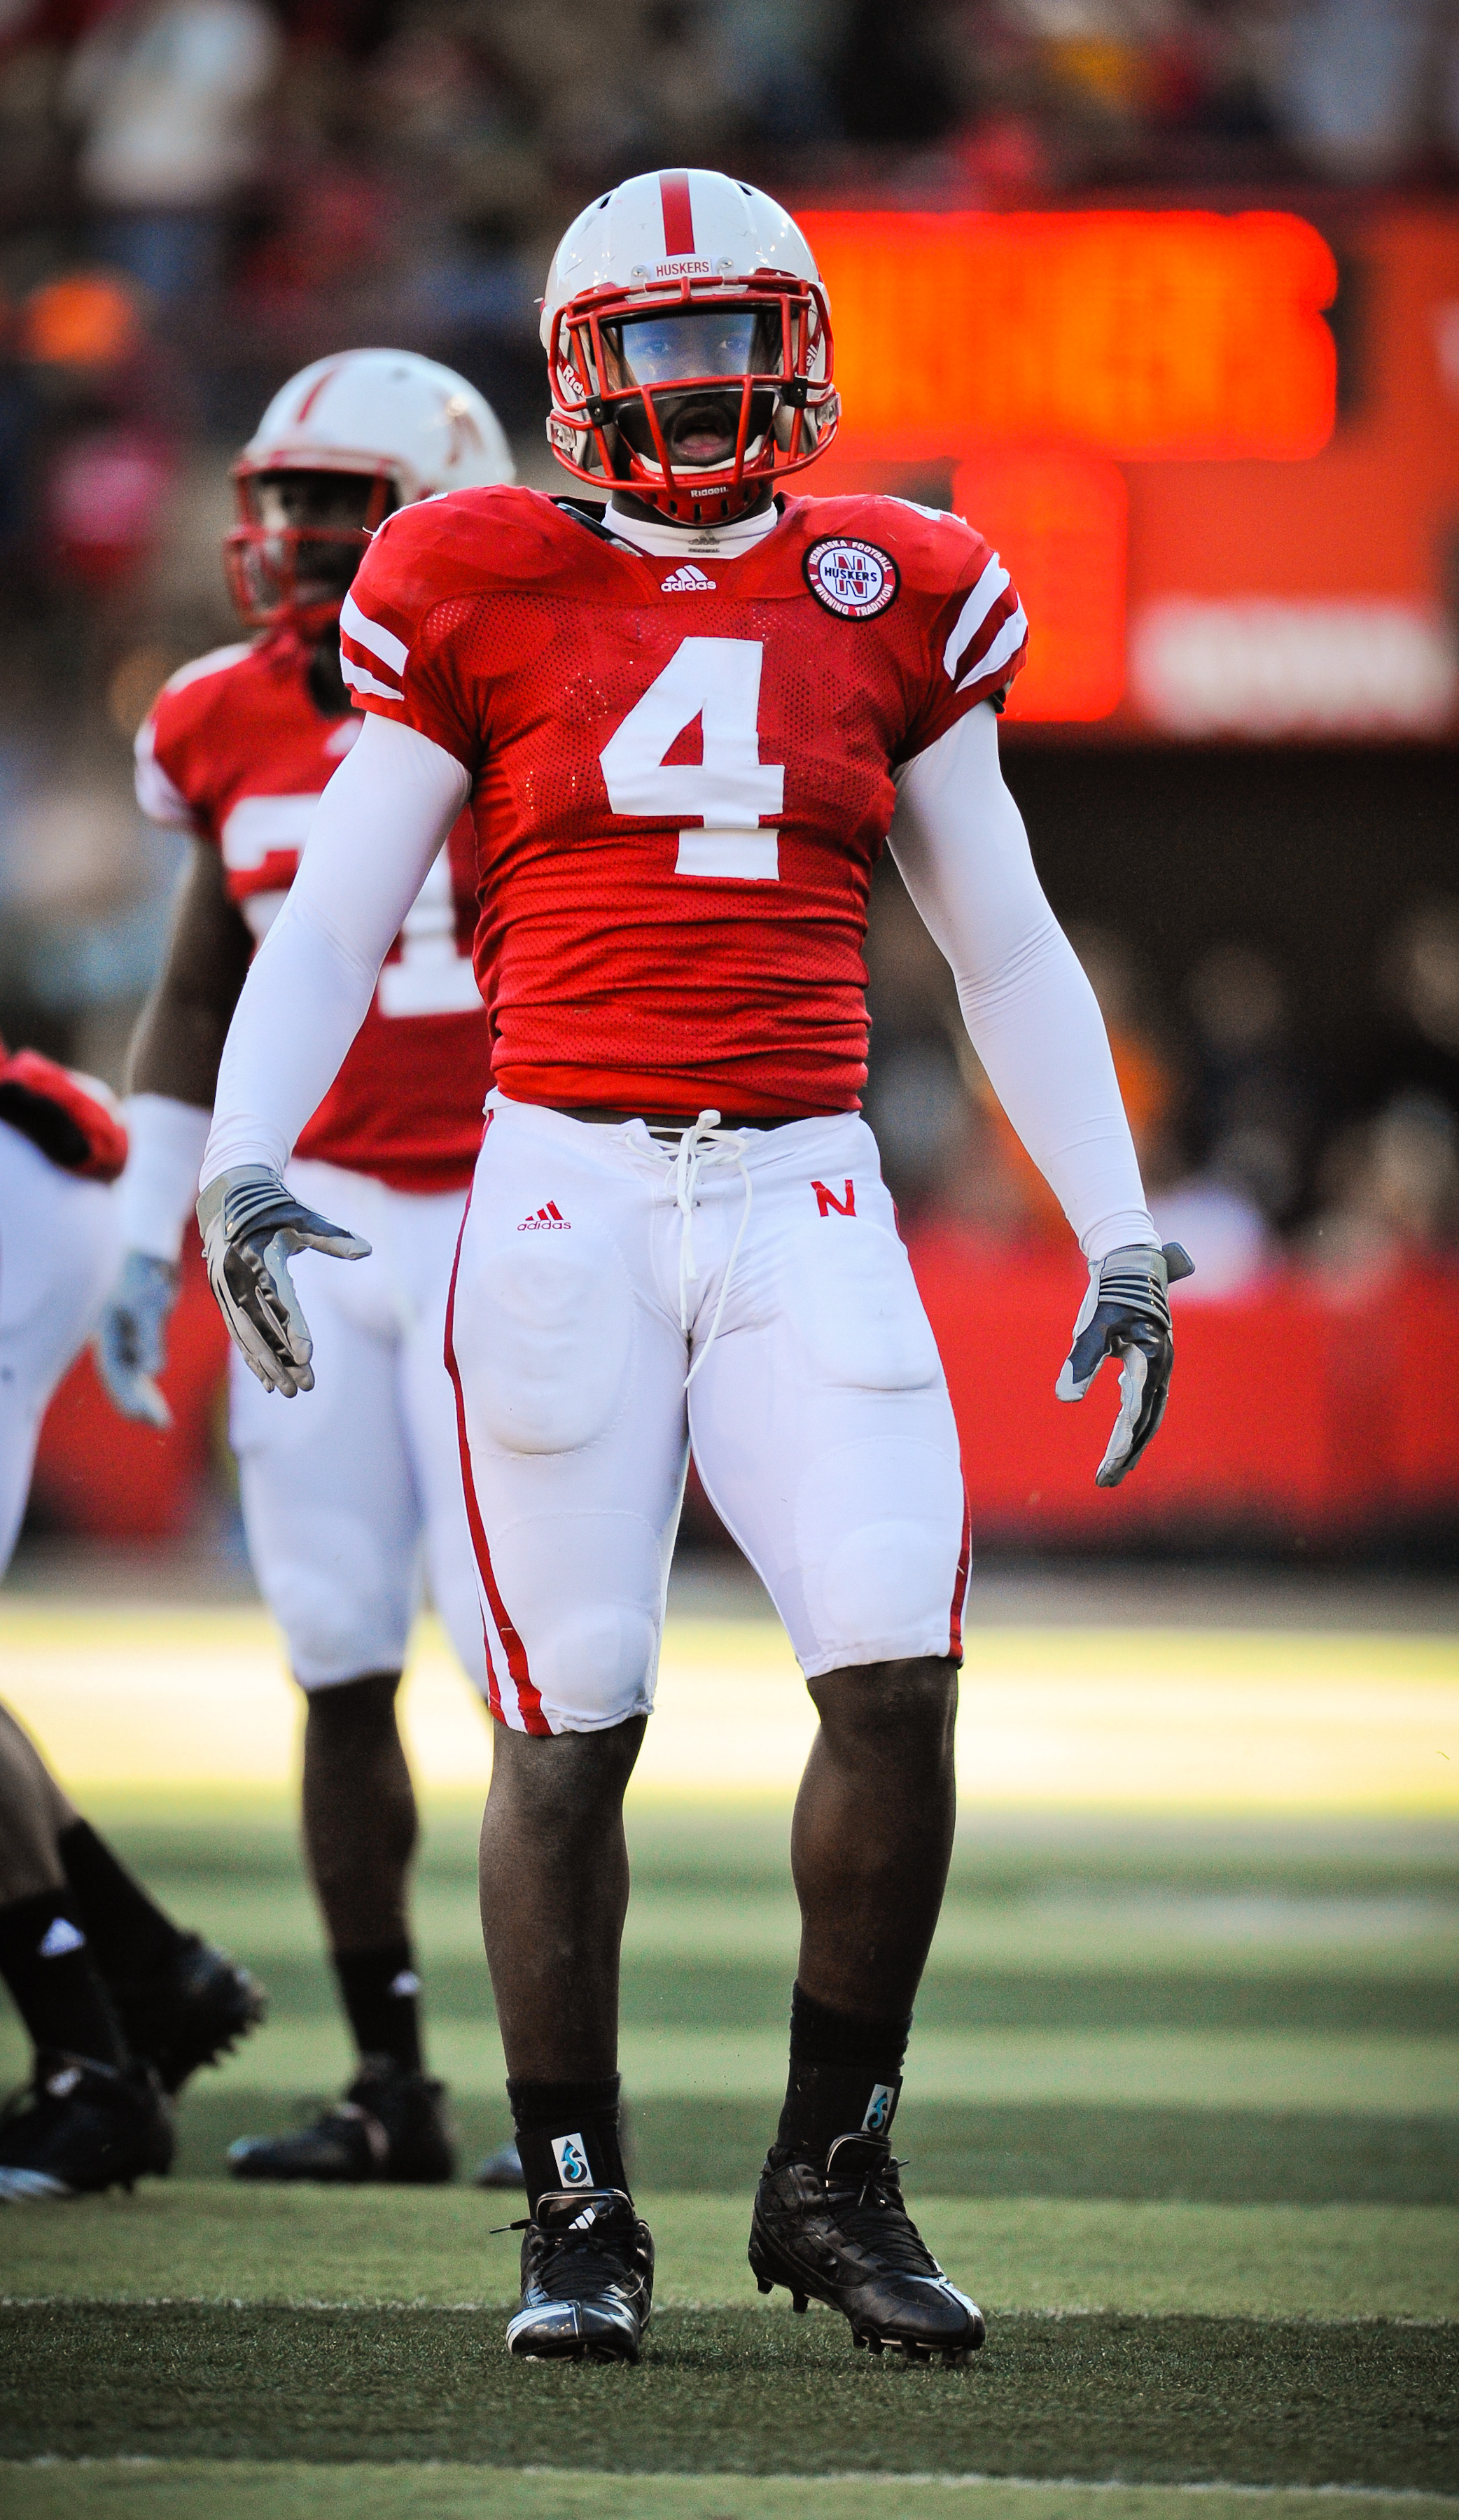 LINCOLN, NE - NOVEMBER 26: Lavonte David #4 of the Nebraska Cornhuskers during their game at Memorial Stadium on November 26, 2010 in Lincoln, Nebraska. Nebraska defeated Colorado 45-17 (Photo by Eric Francis/Getty Images)